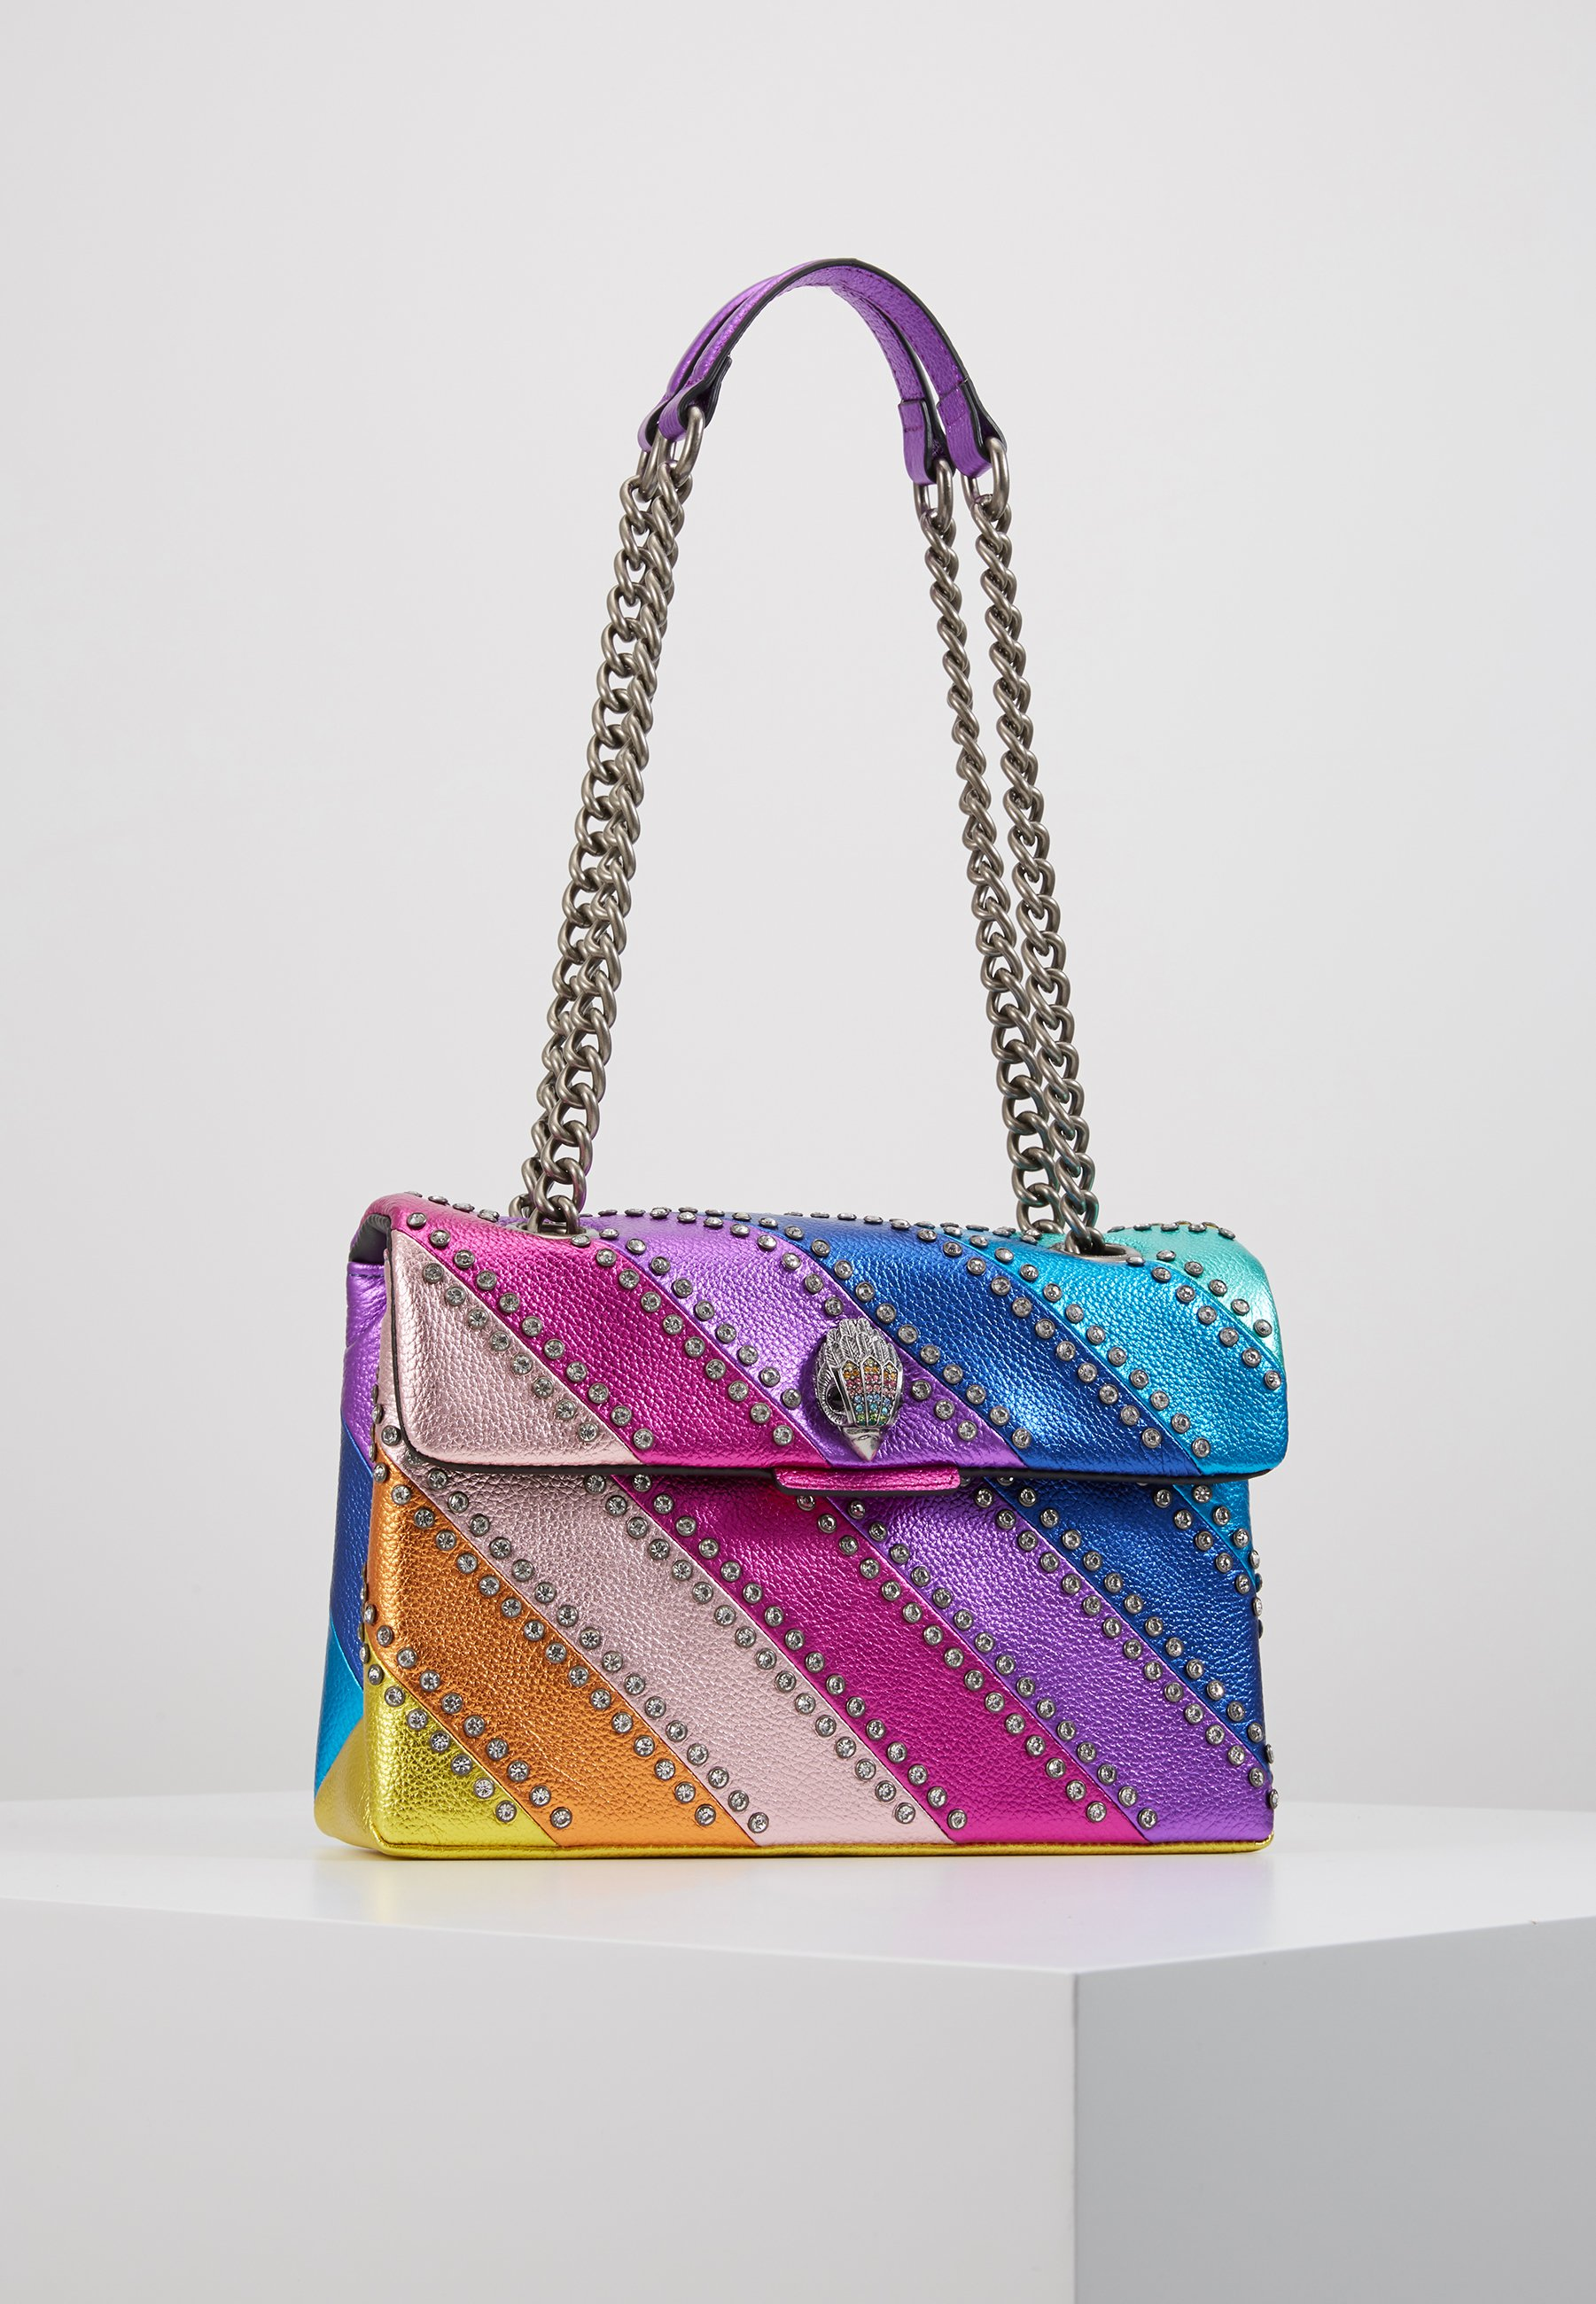 Kurt Geiger London Crystal Kensington Bag - Torba Na Ramię Multi-coloured